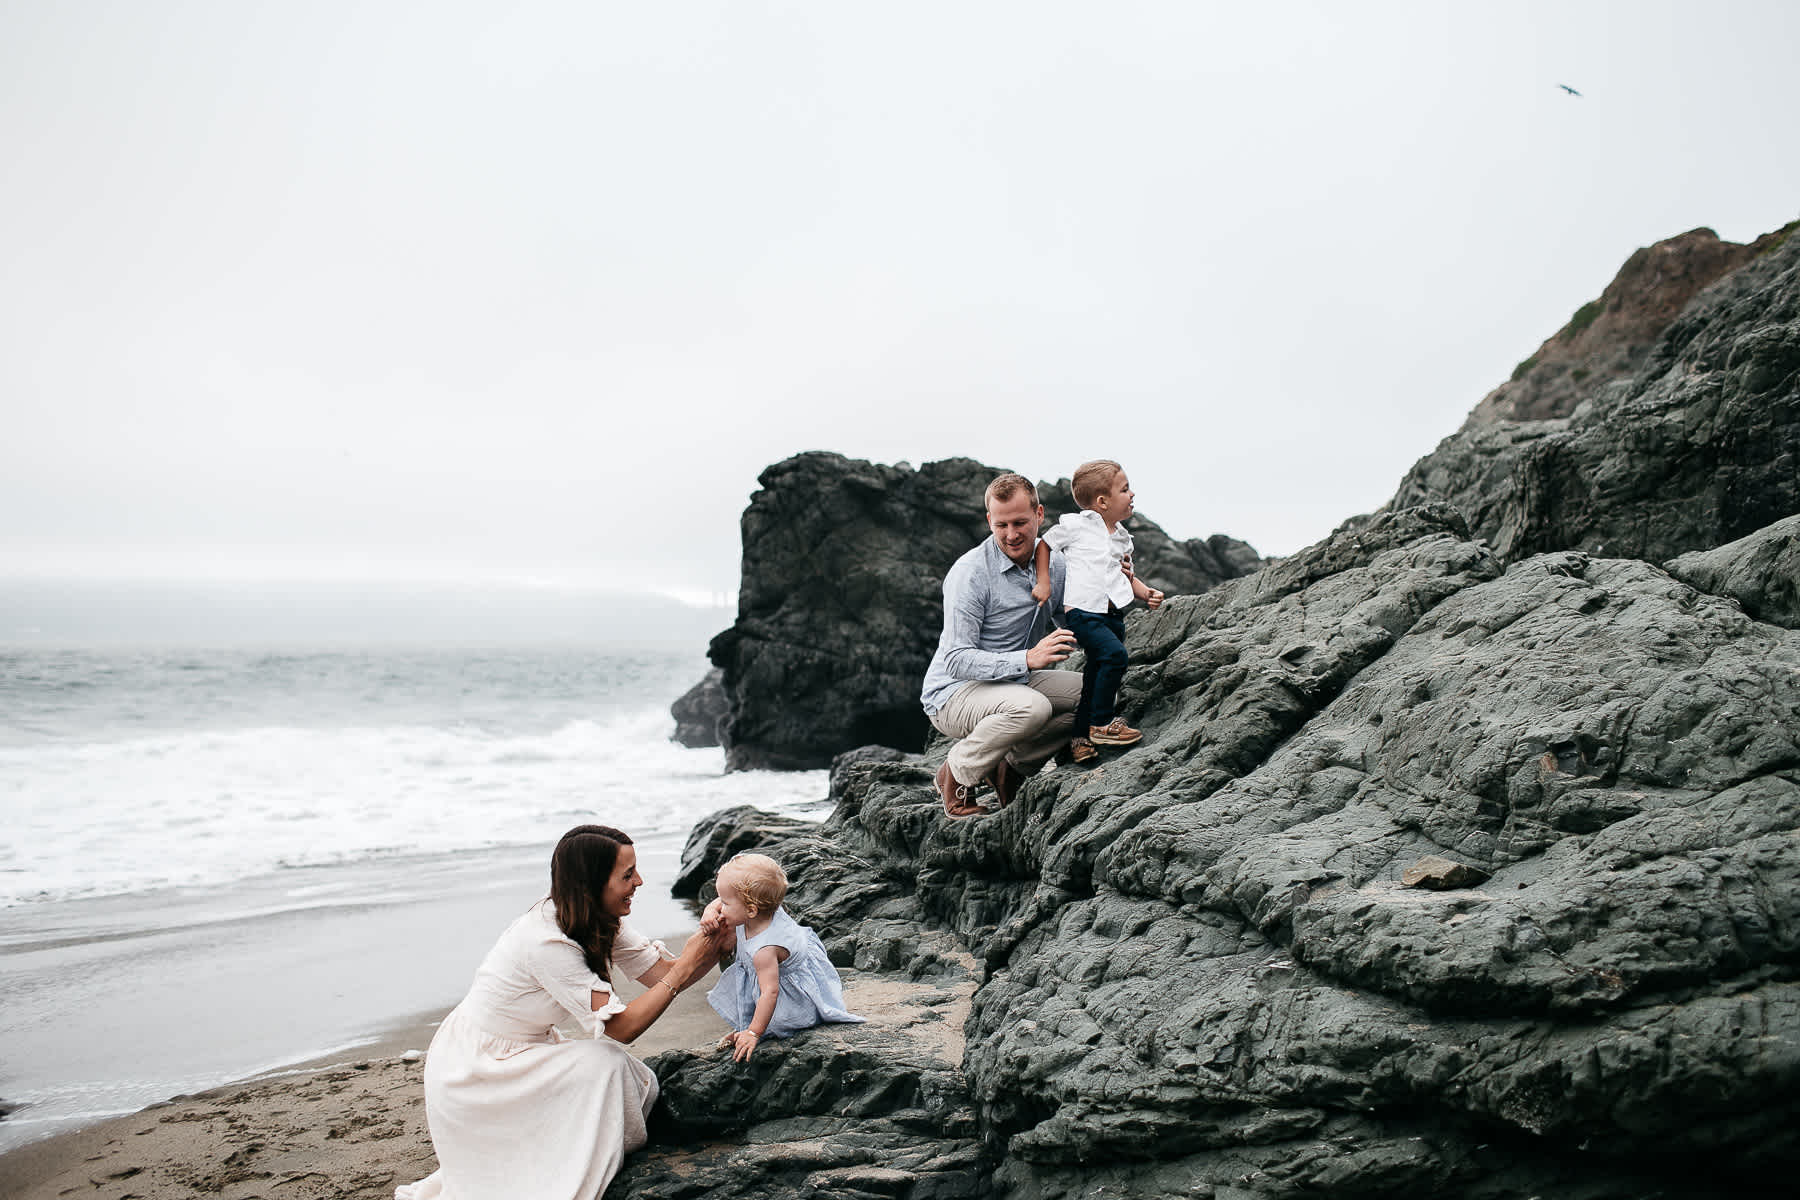 china-beach-san-francisco-family-session-9